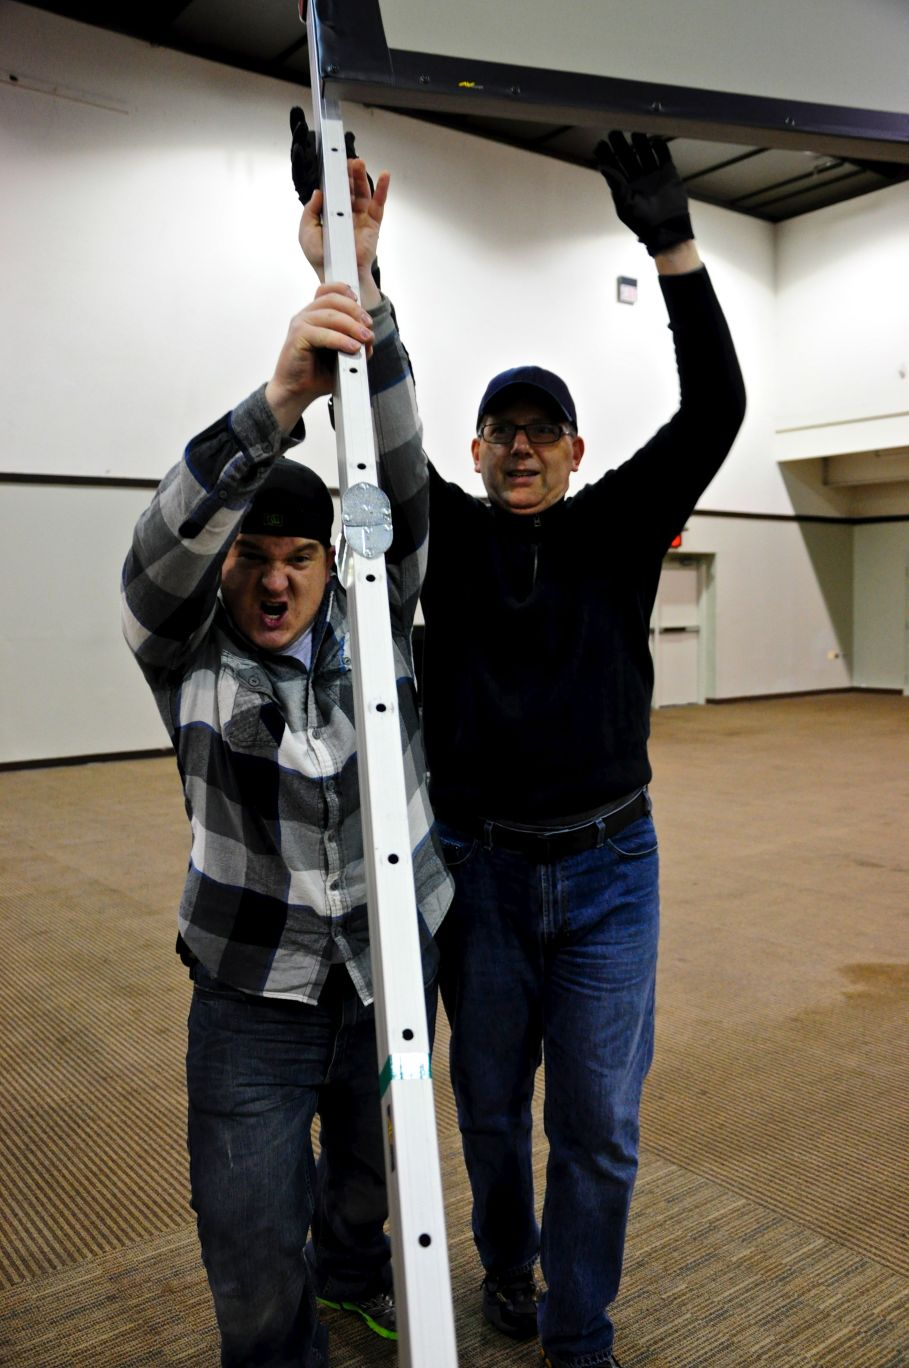 Zayne and Brent help raise one of our ginormous side screens.